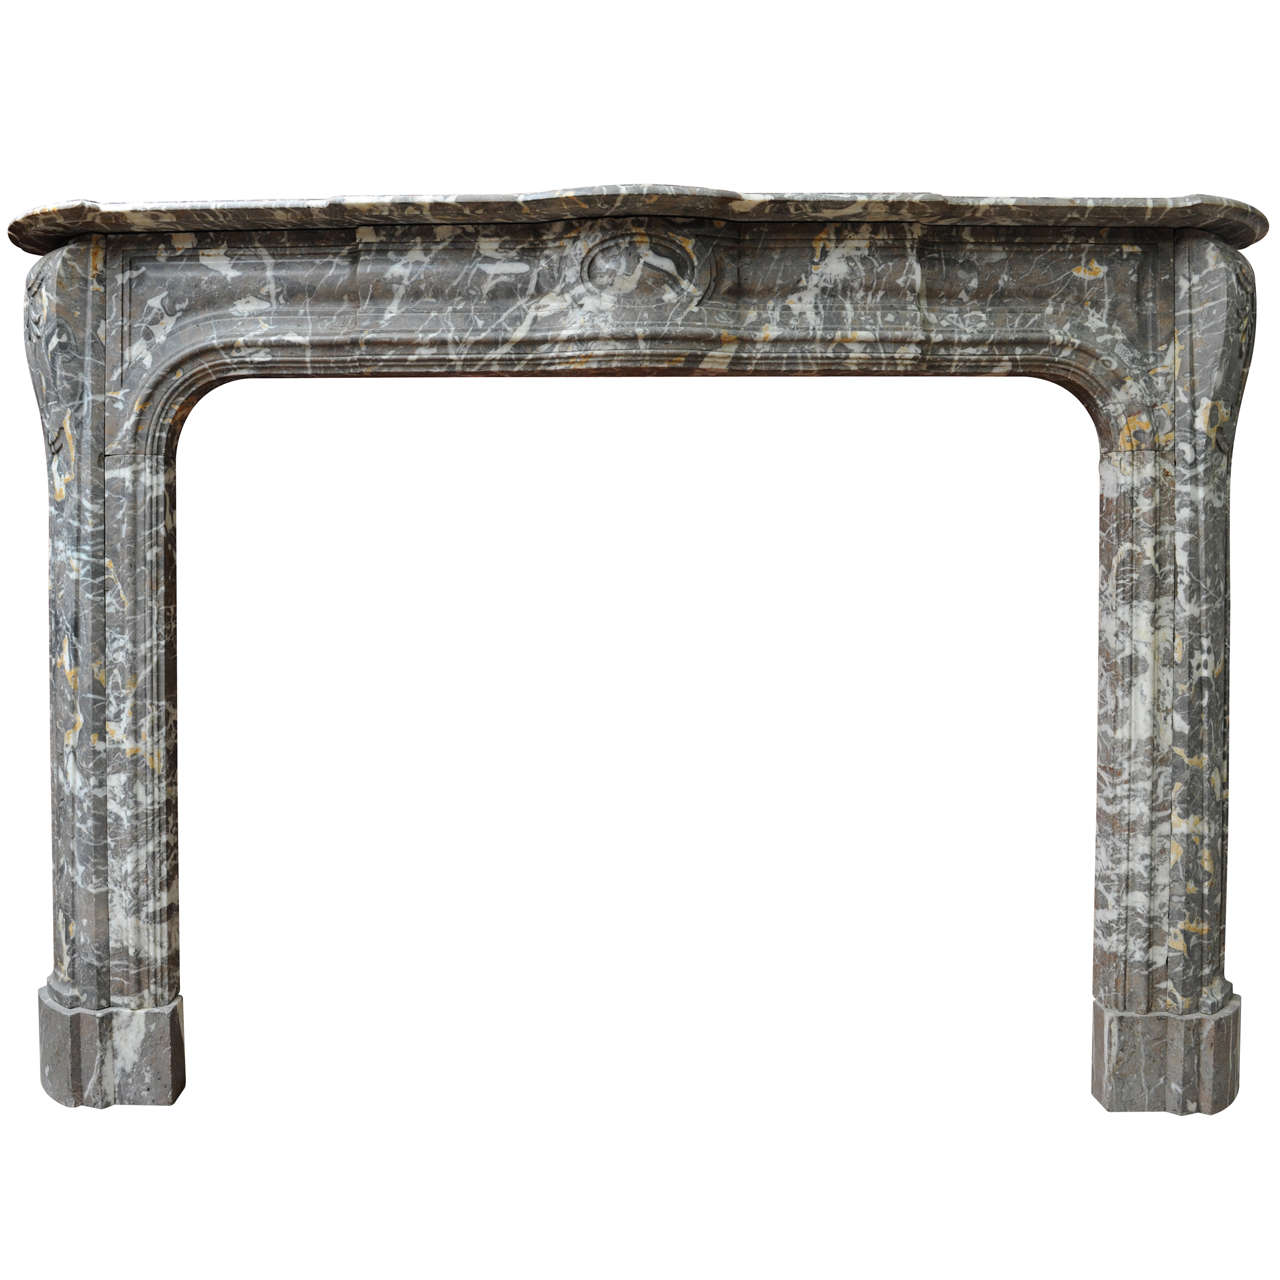 An early 18th c dutch baroque gris marble fireplace mantel piece for sale at 1stdibs - Fireplace mantel piece ...